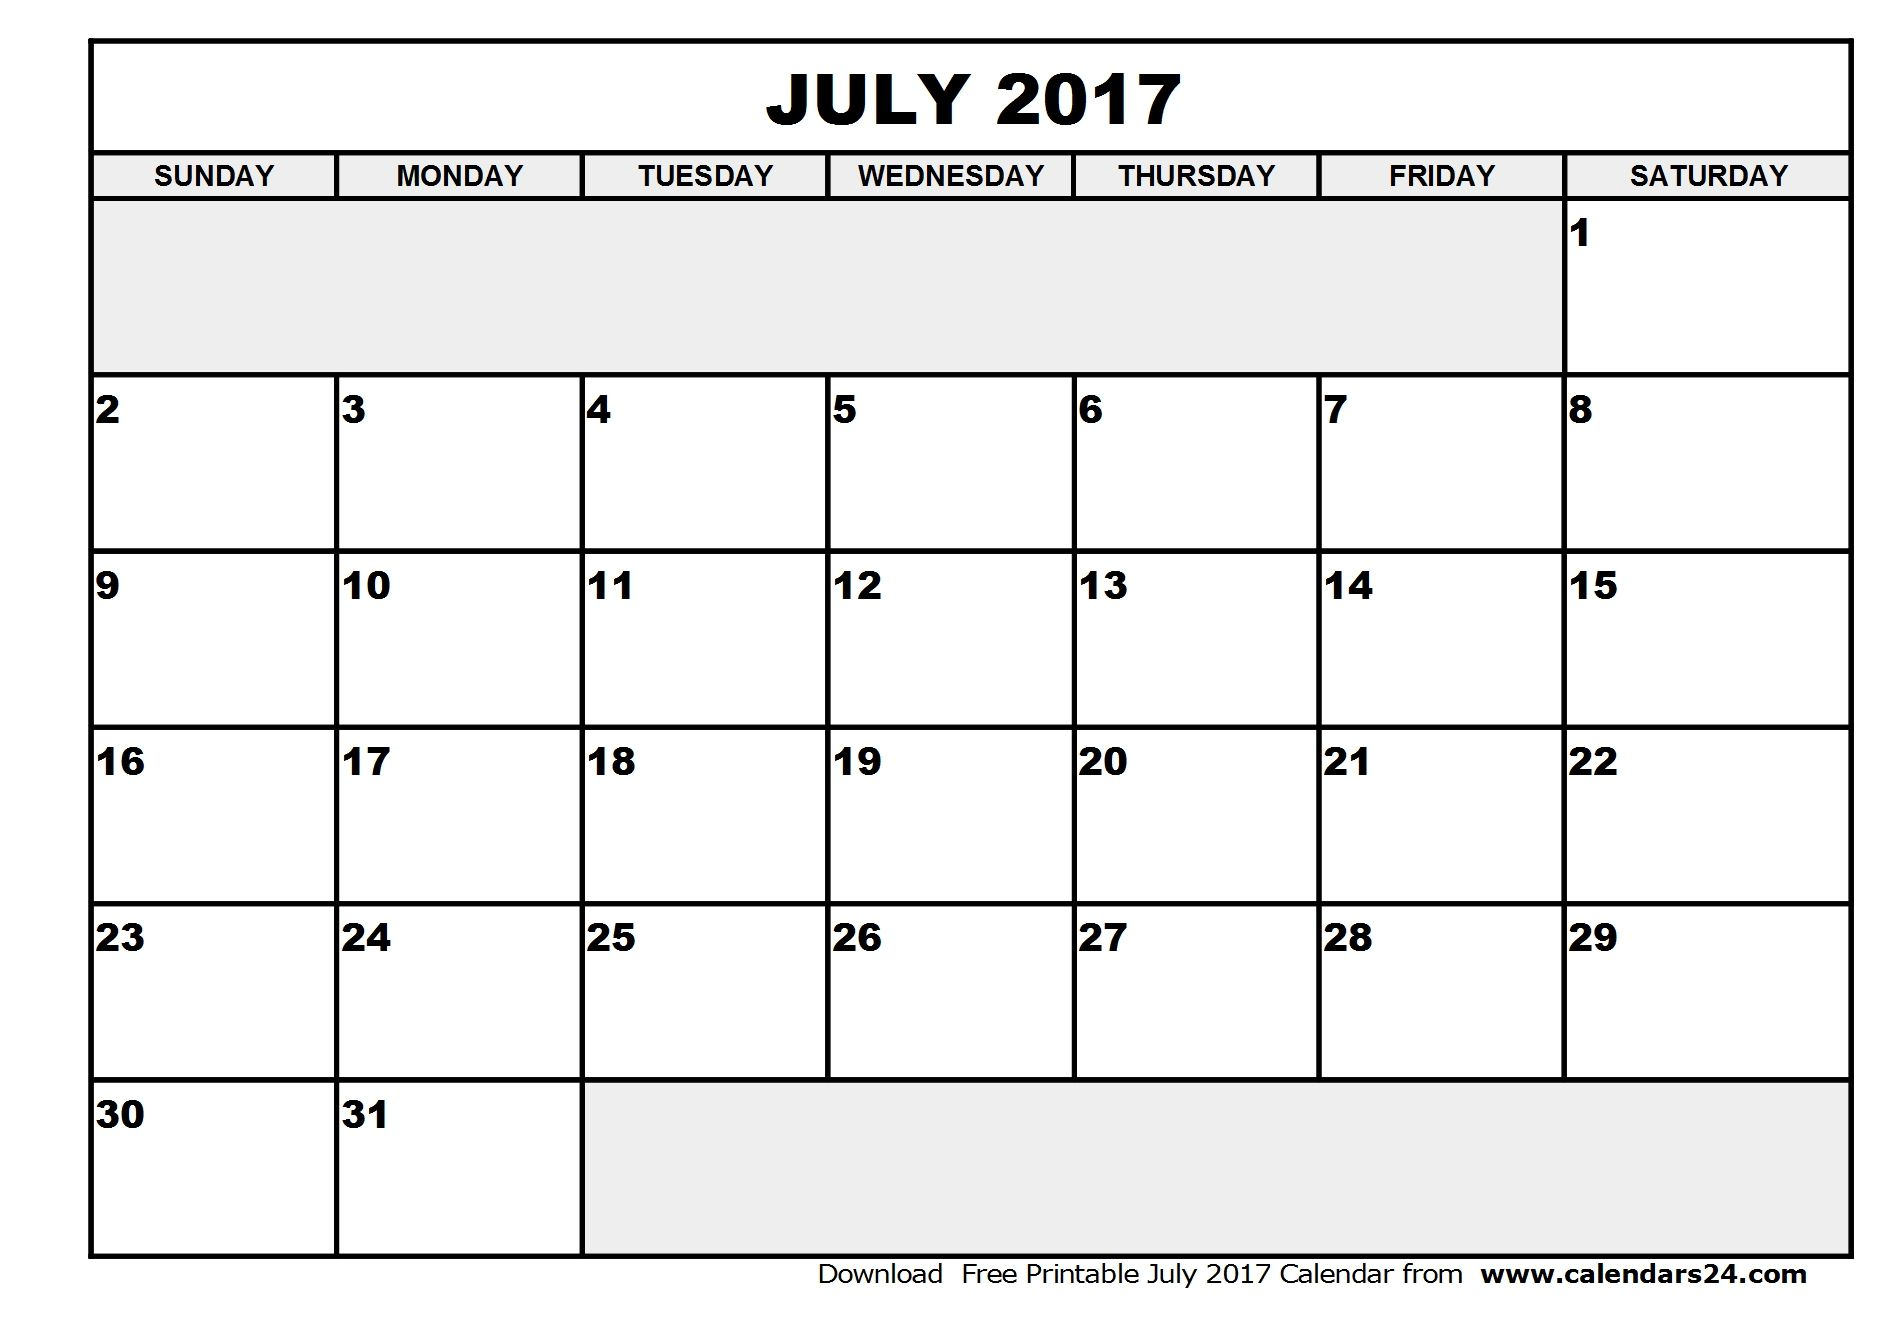 July 2017 Calendar Template | July 2017 Calendar | Pinterest ...